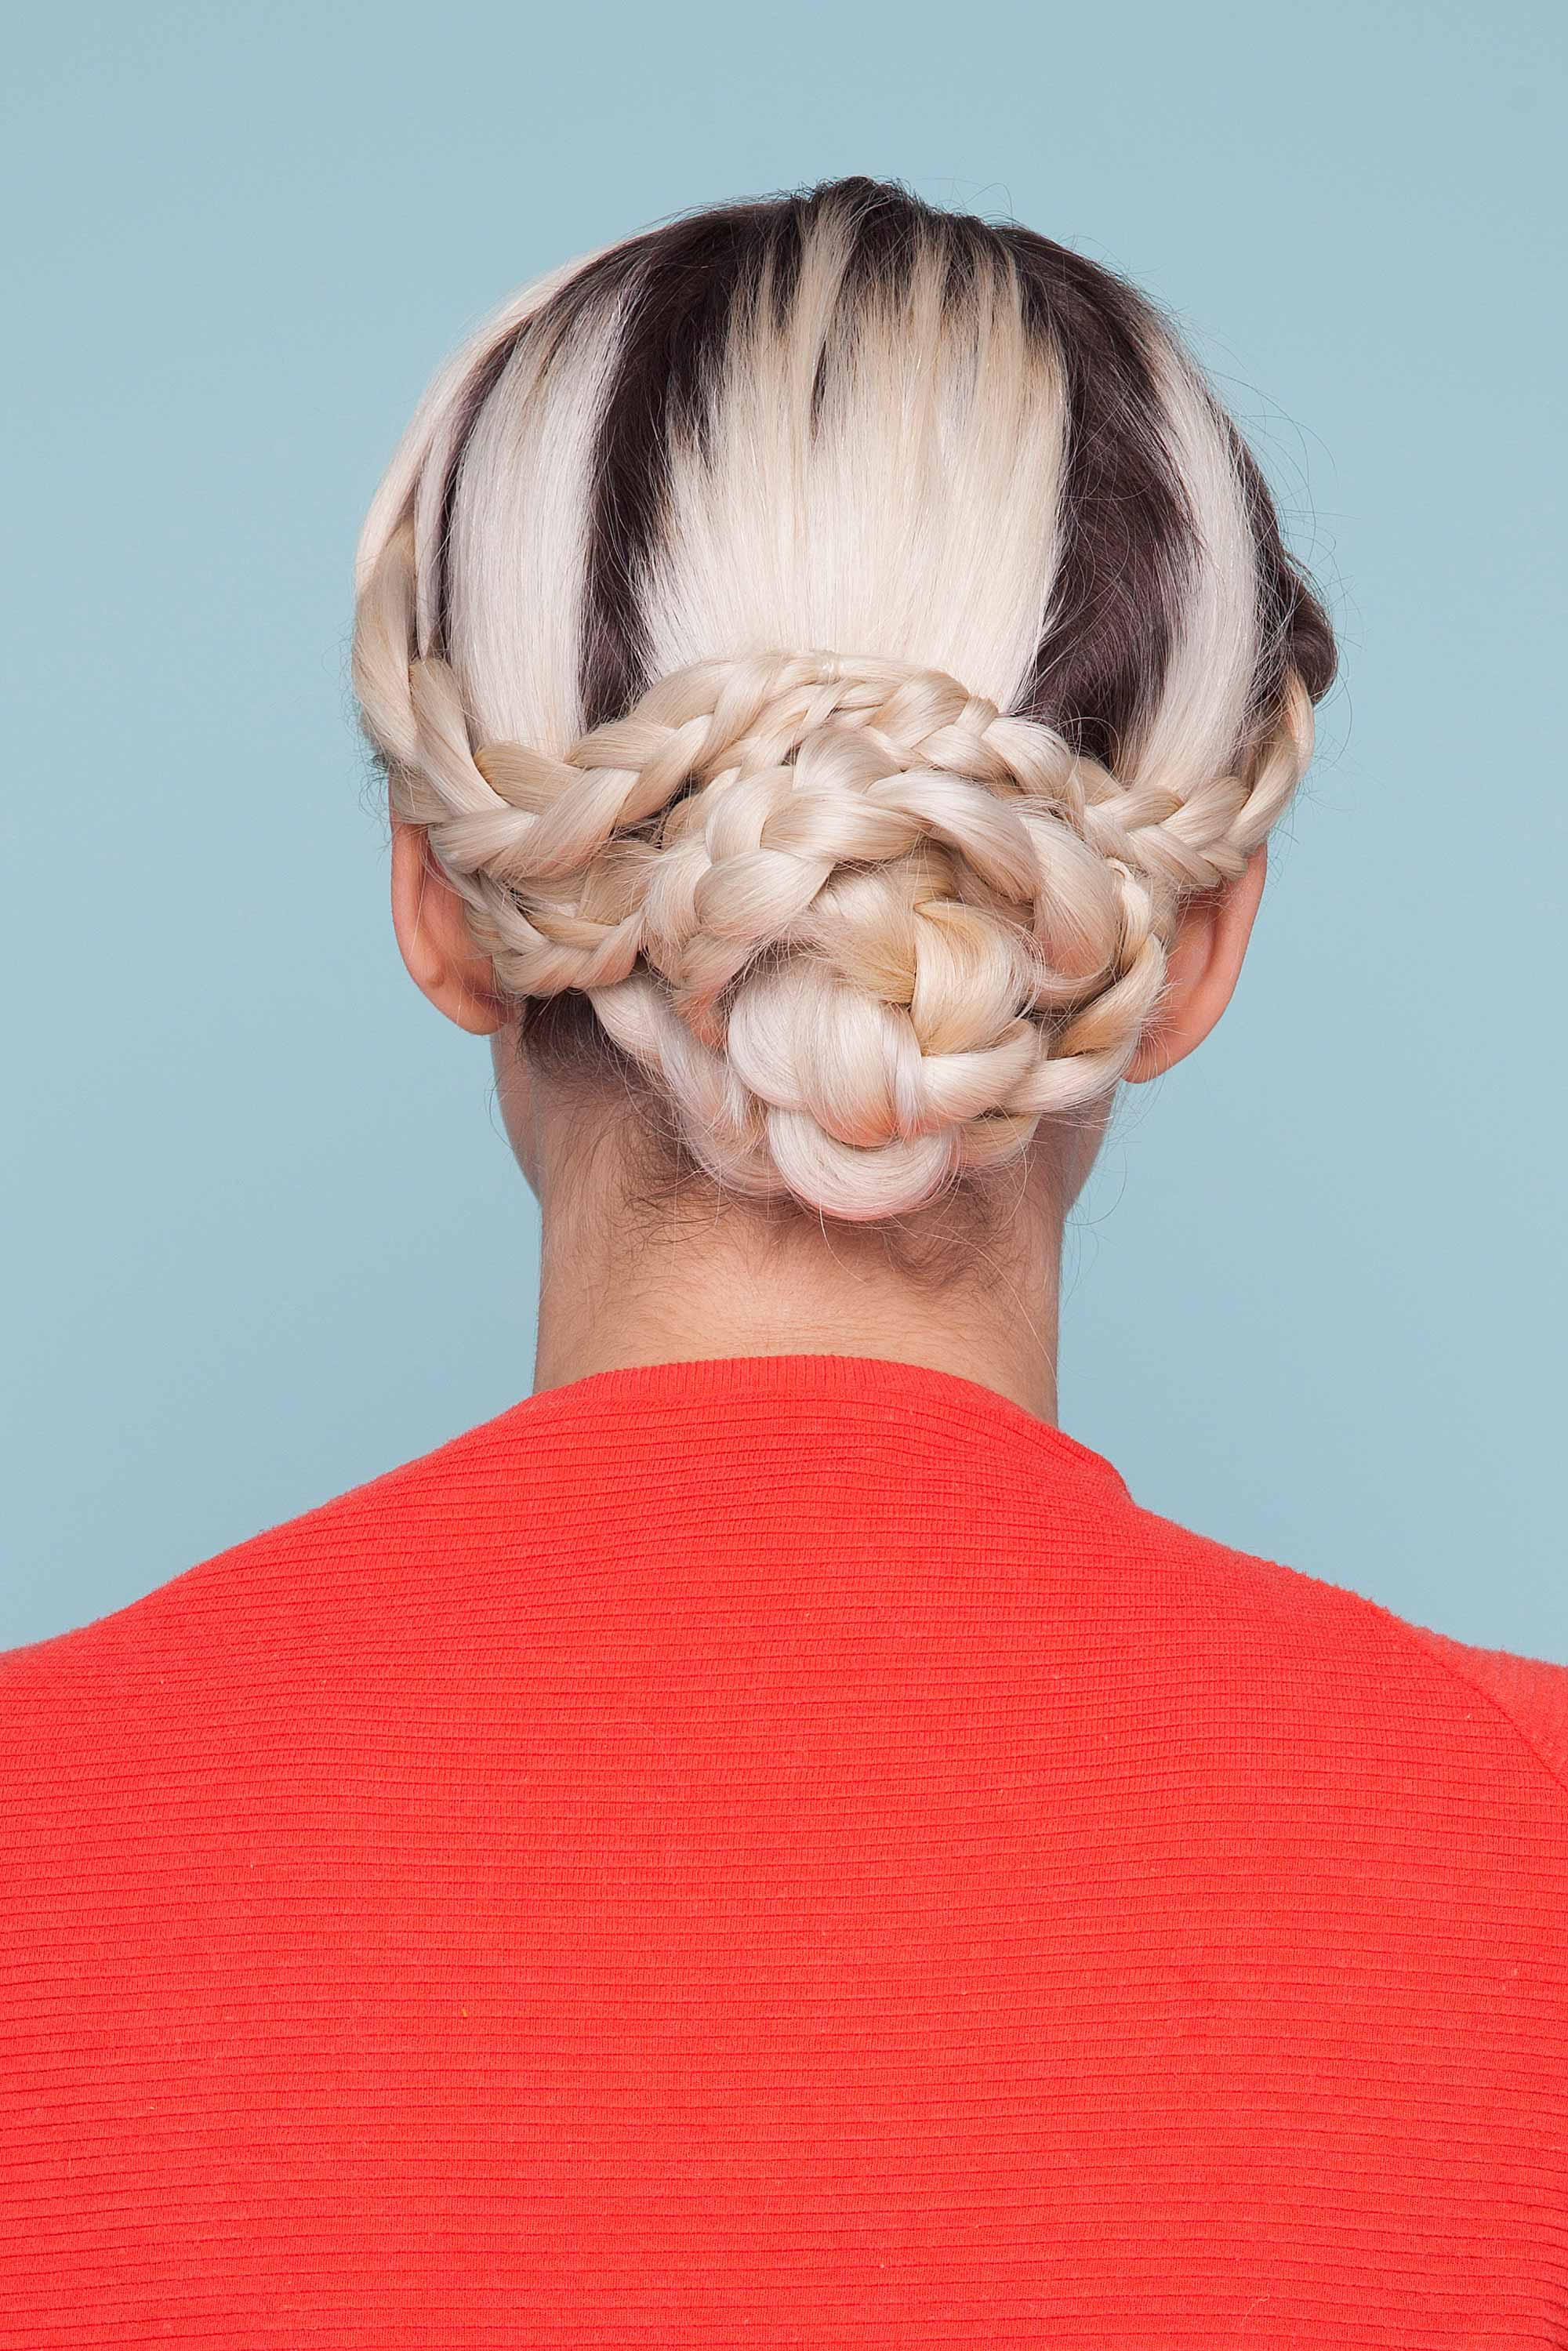 Woman wearing festival braids in an updo.